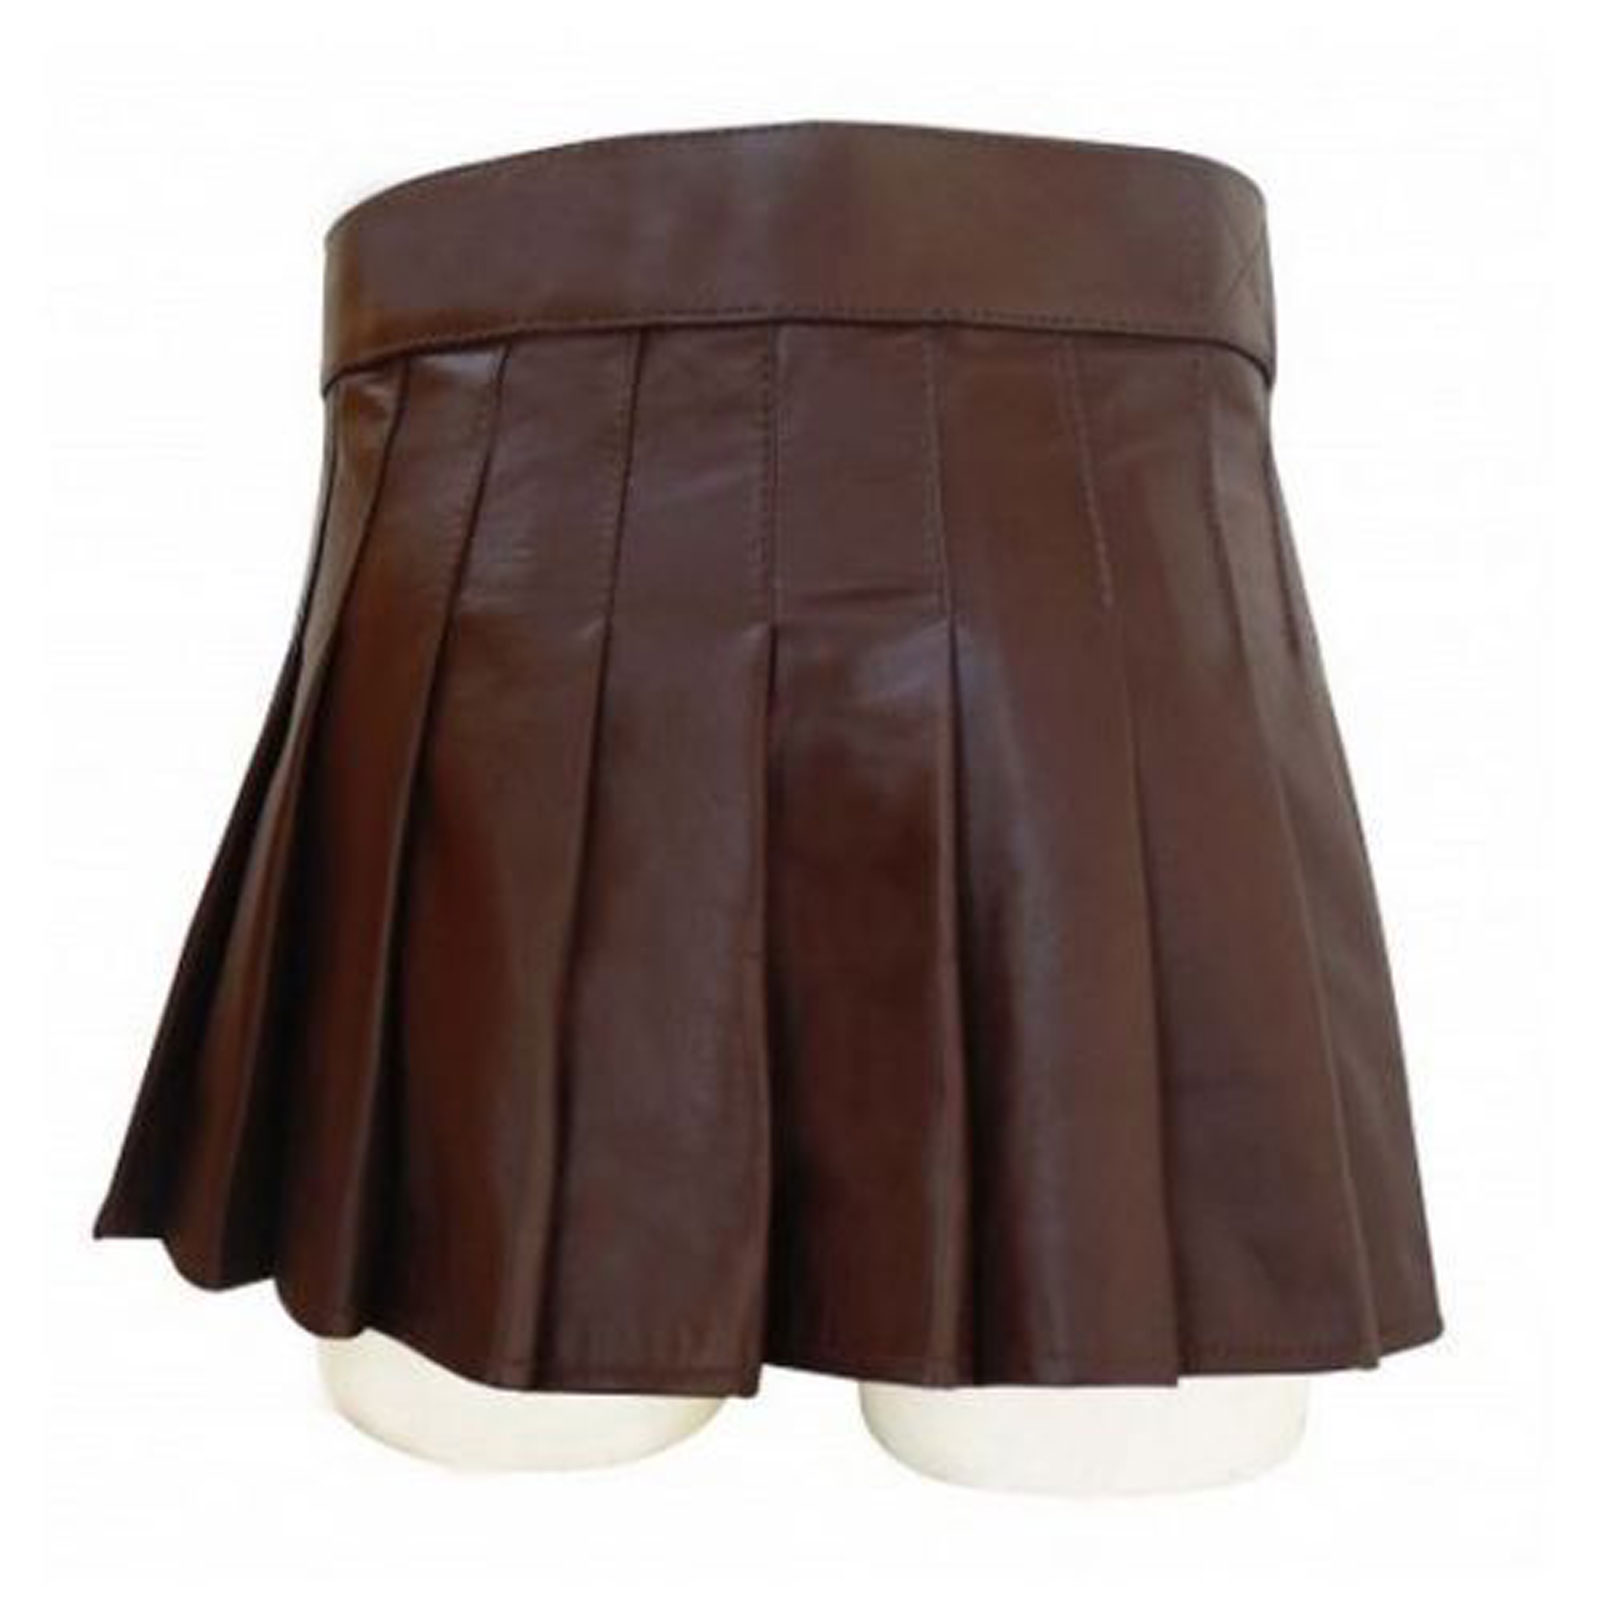 scottish-black-leather-highland-gladiator-viking-utility-kilt-back